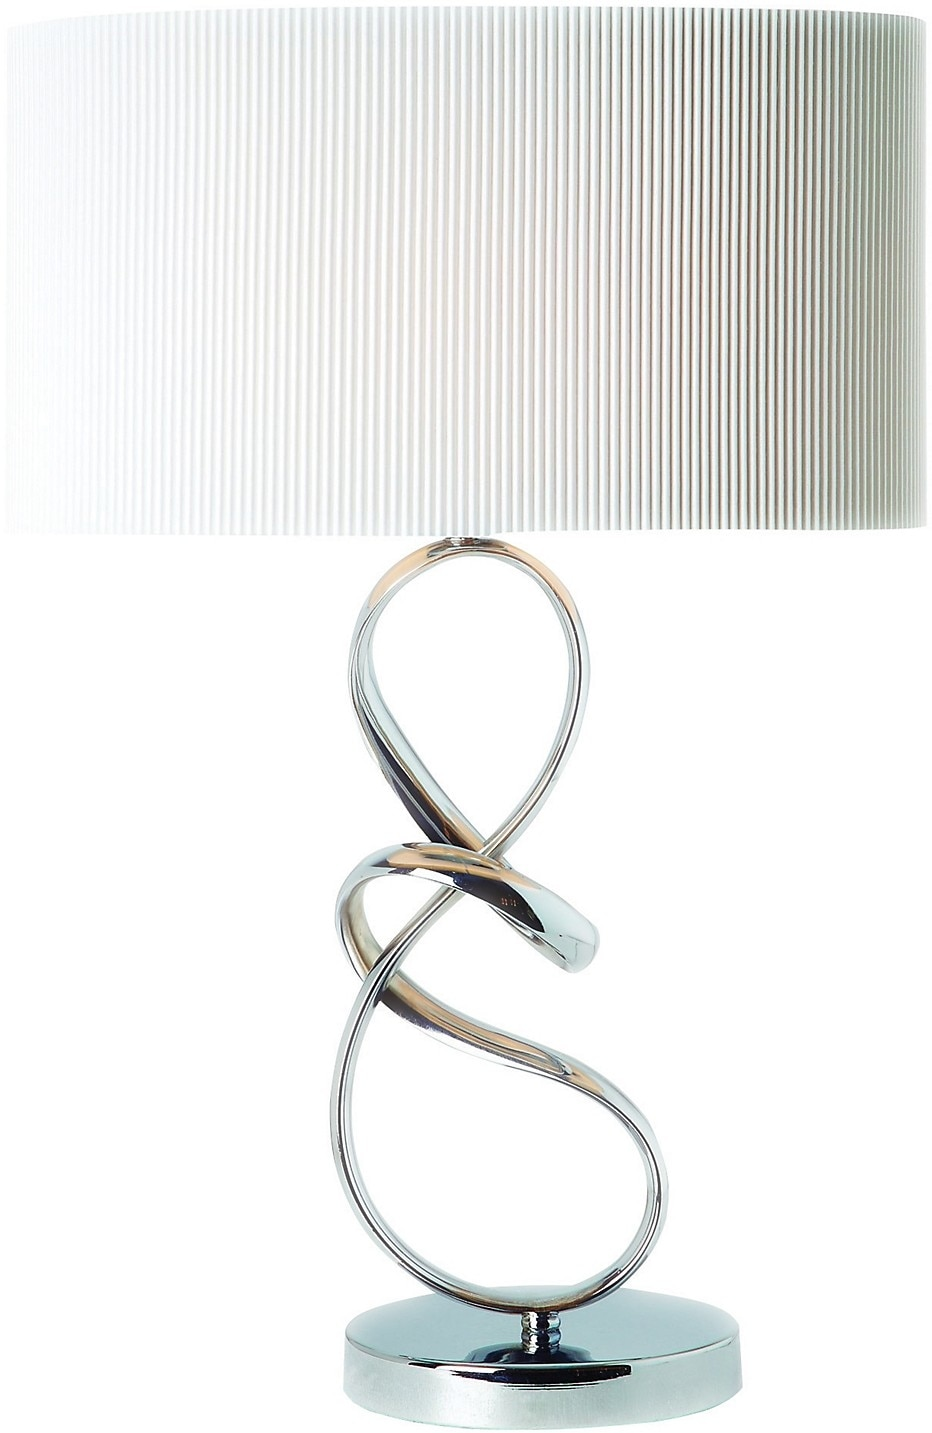 Home Accessories - Chrome Table Lamp with White Shade